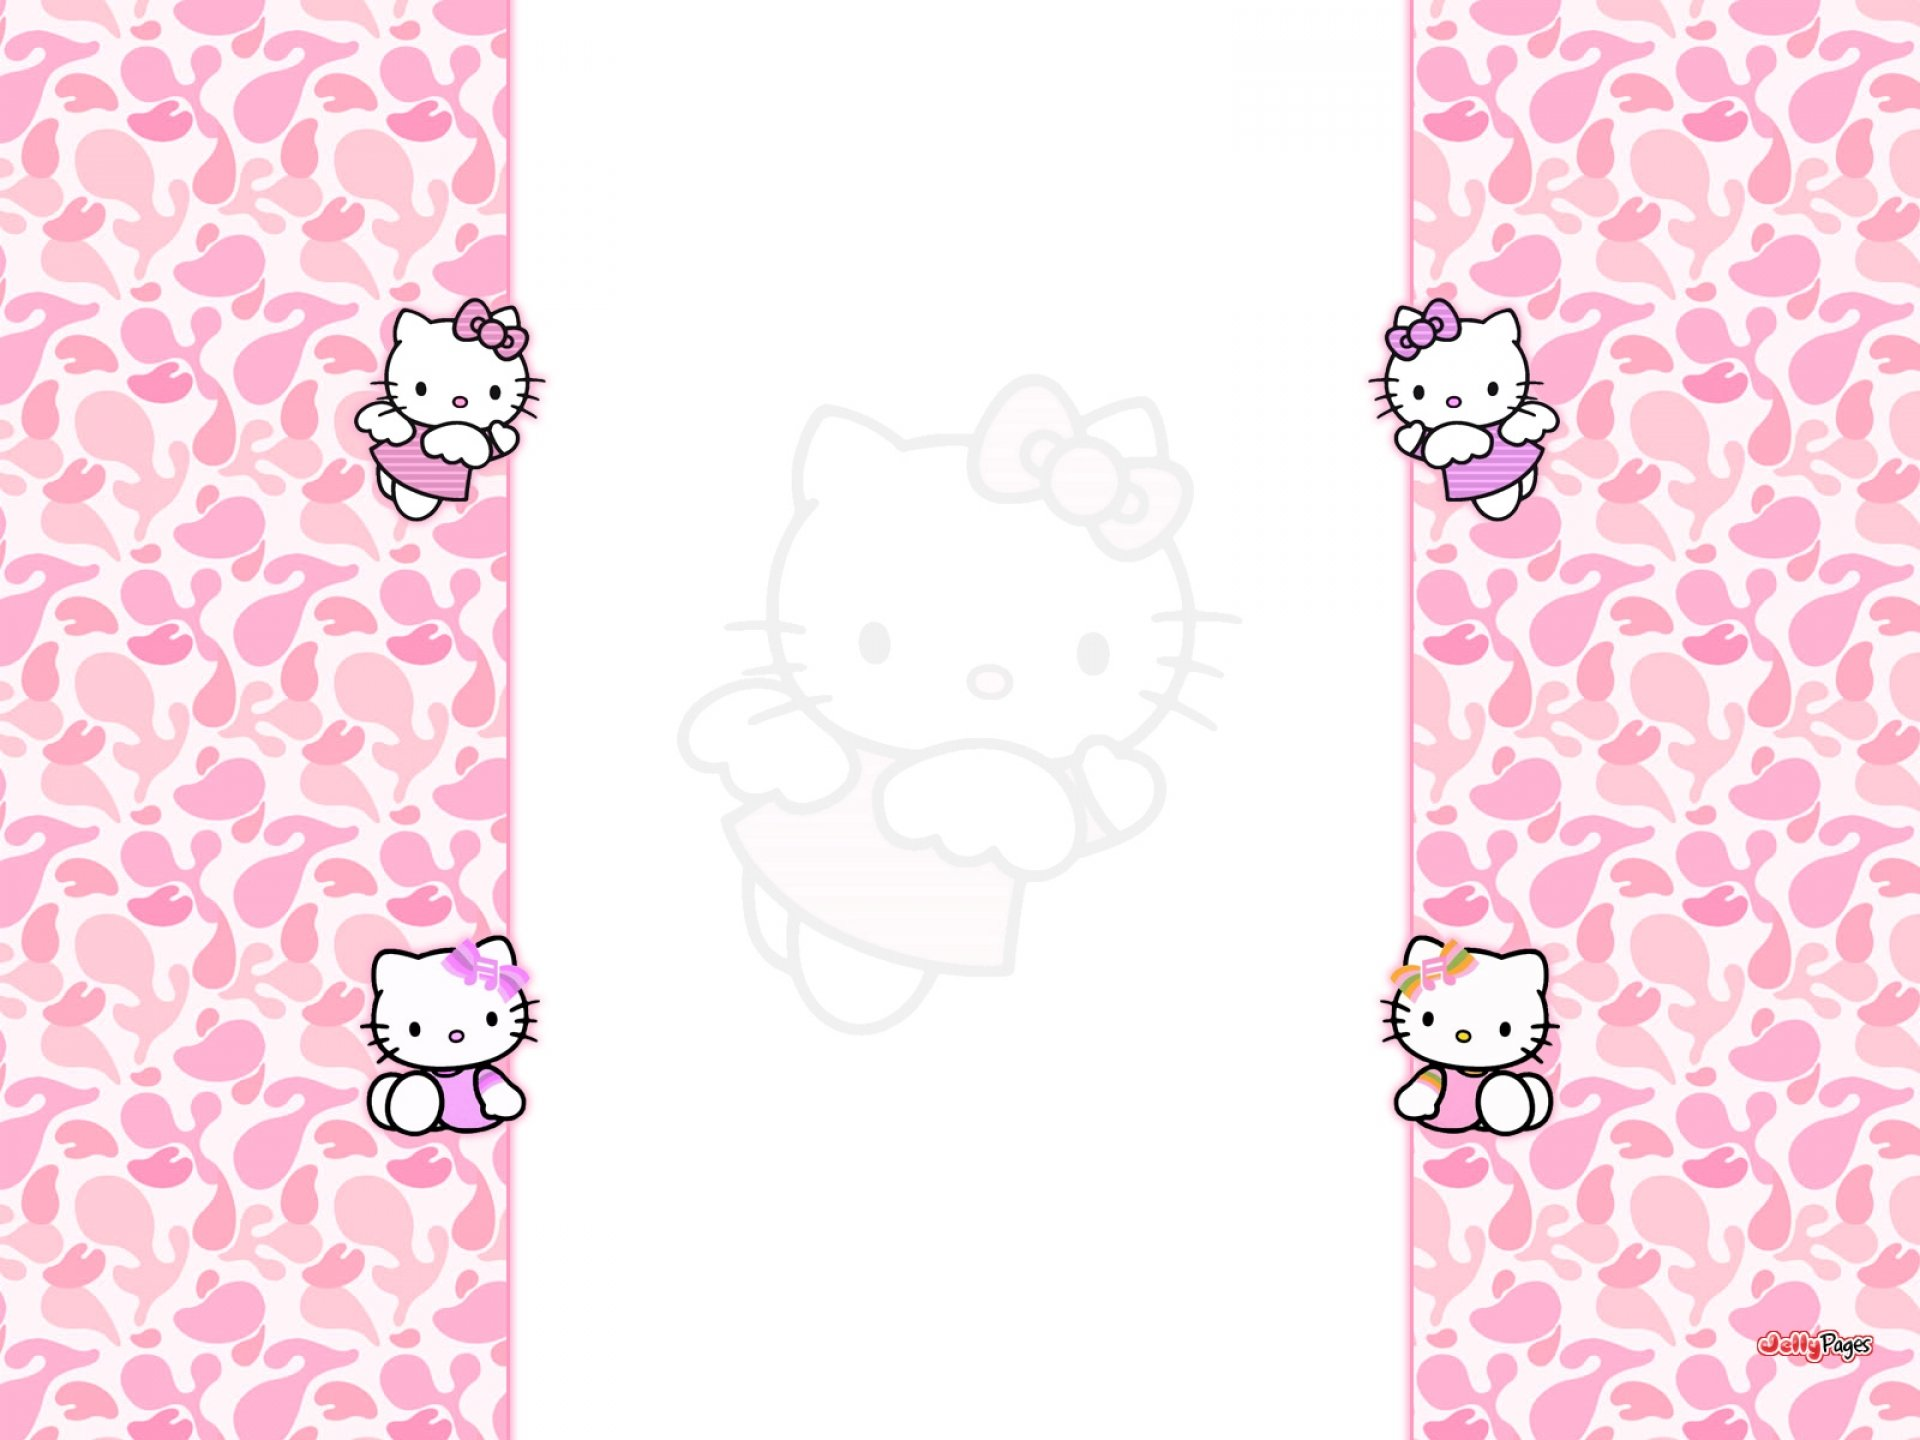 Great Wallpaper Hello Kitty White - 1777c9cbb00209d662b5d7af240f7750  Perfect Image Reference_289514.jpg